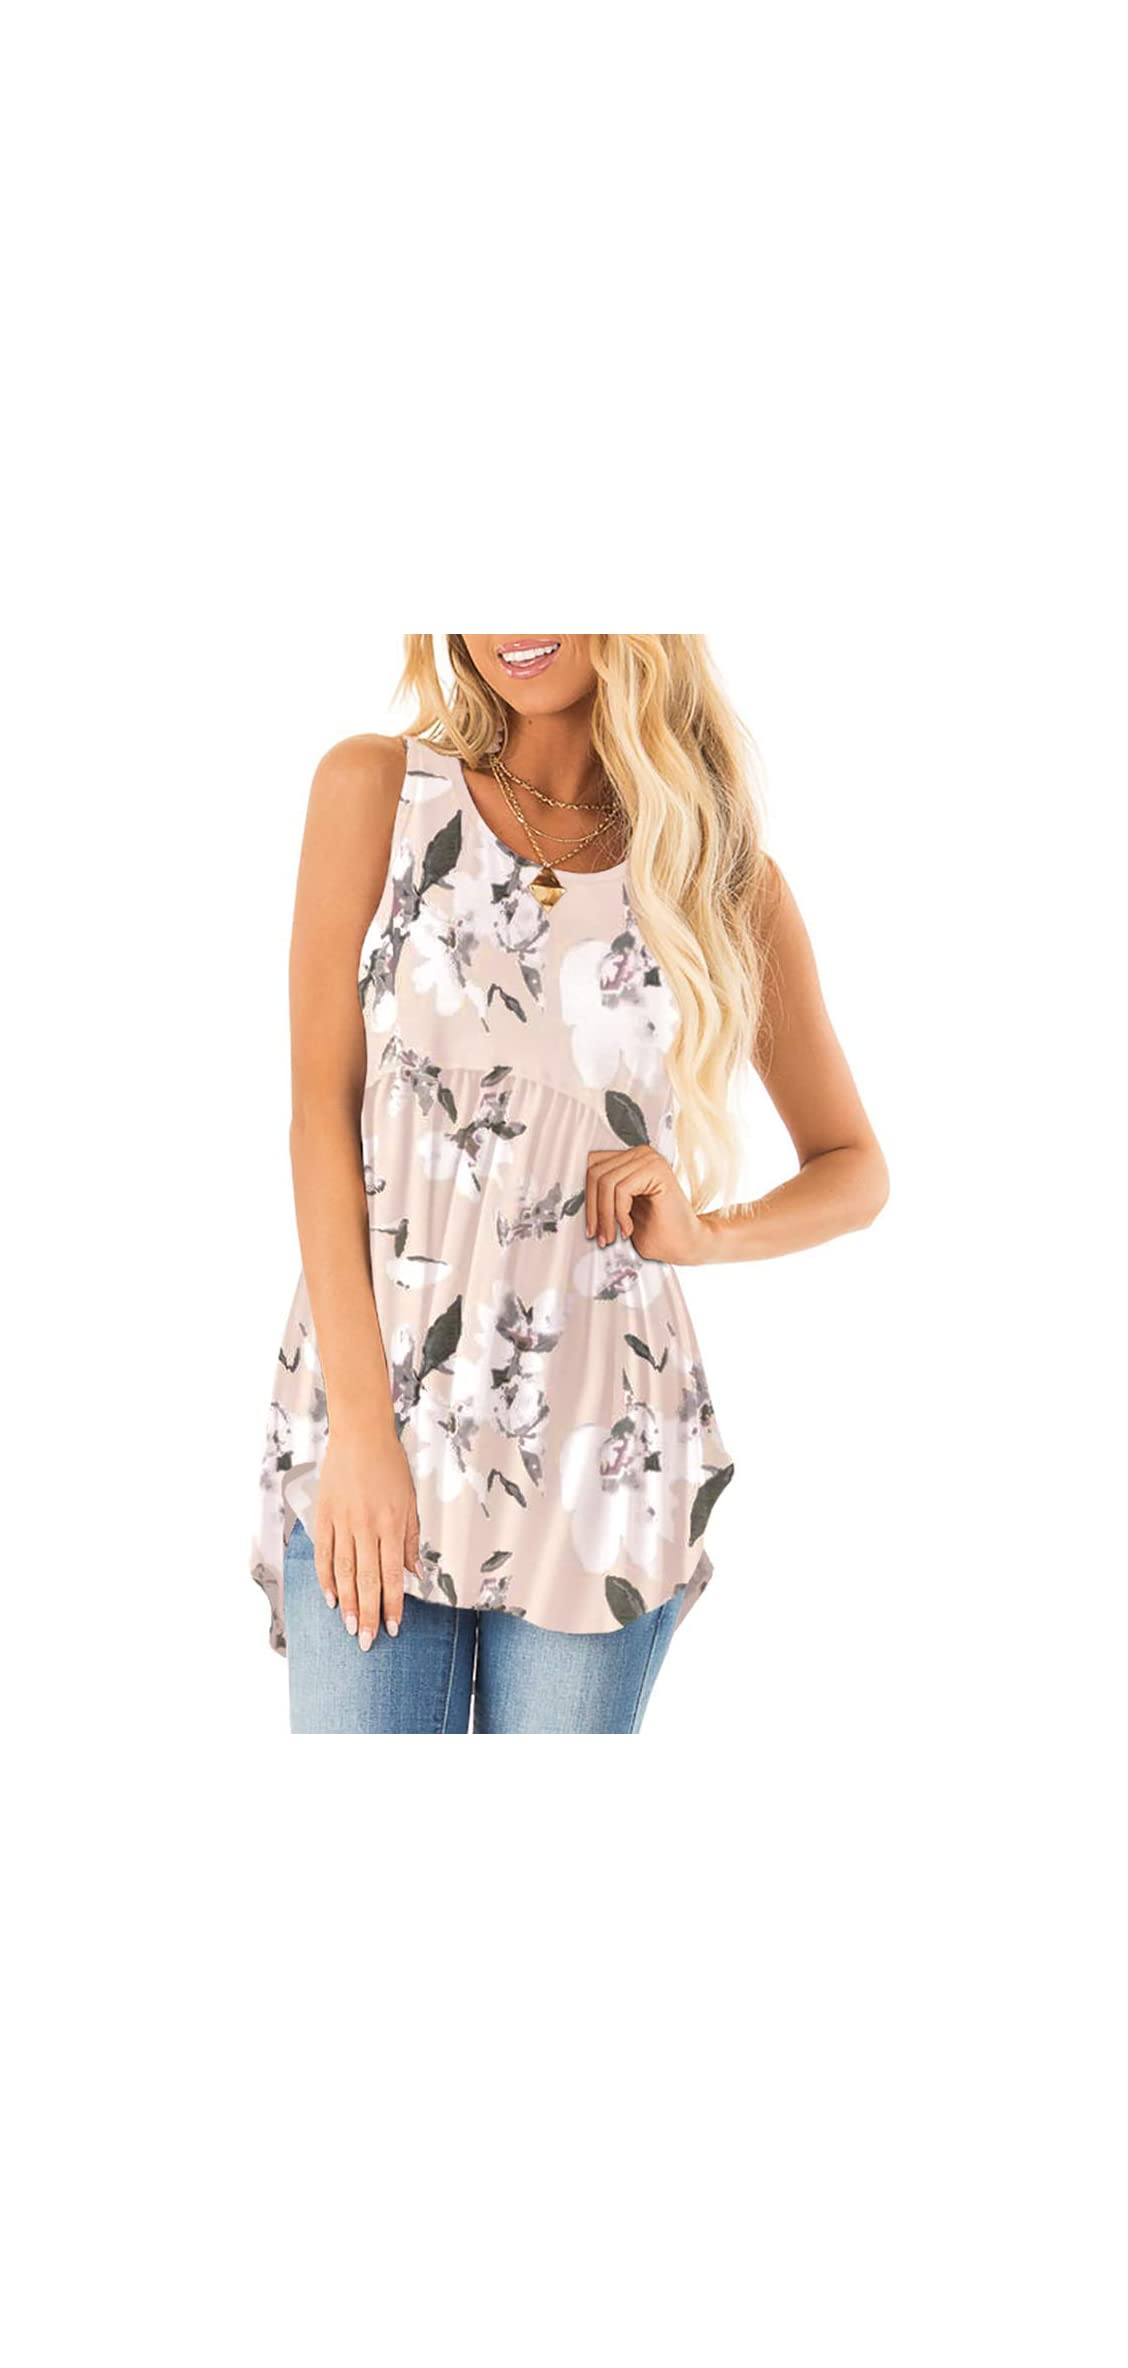 Women Summer Pleated Tank Tops Floral Printed Shirts